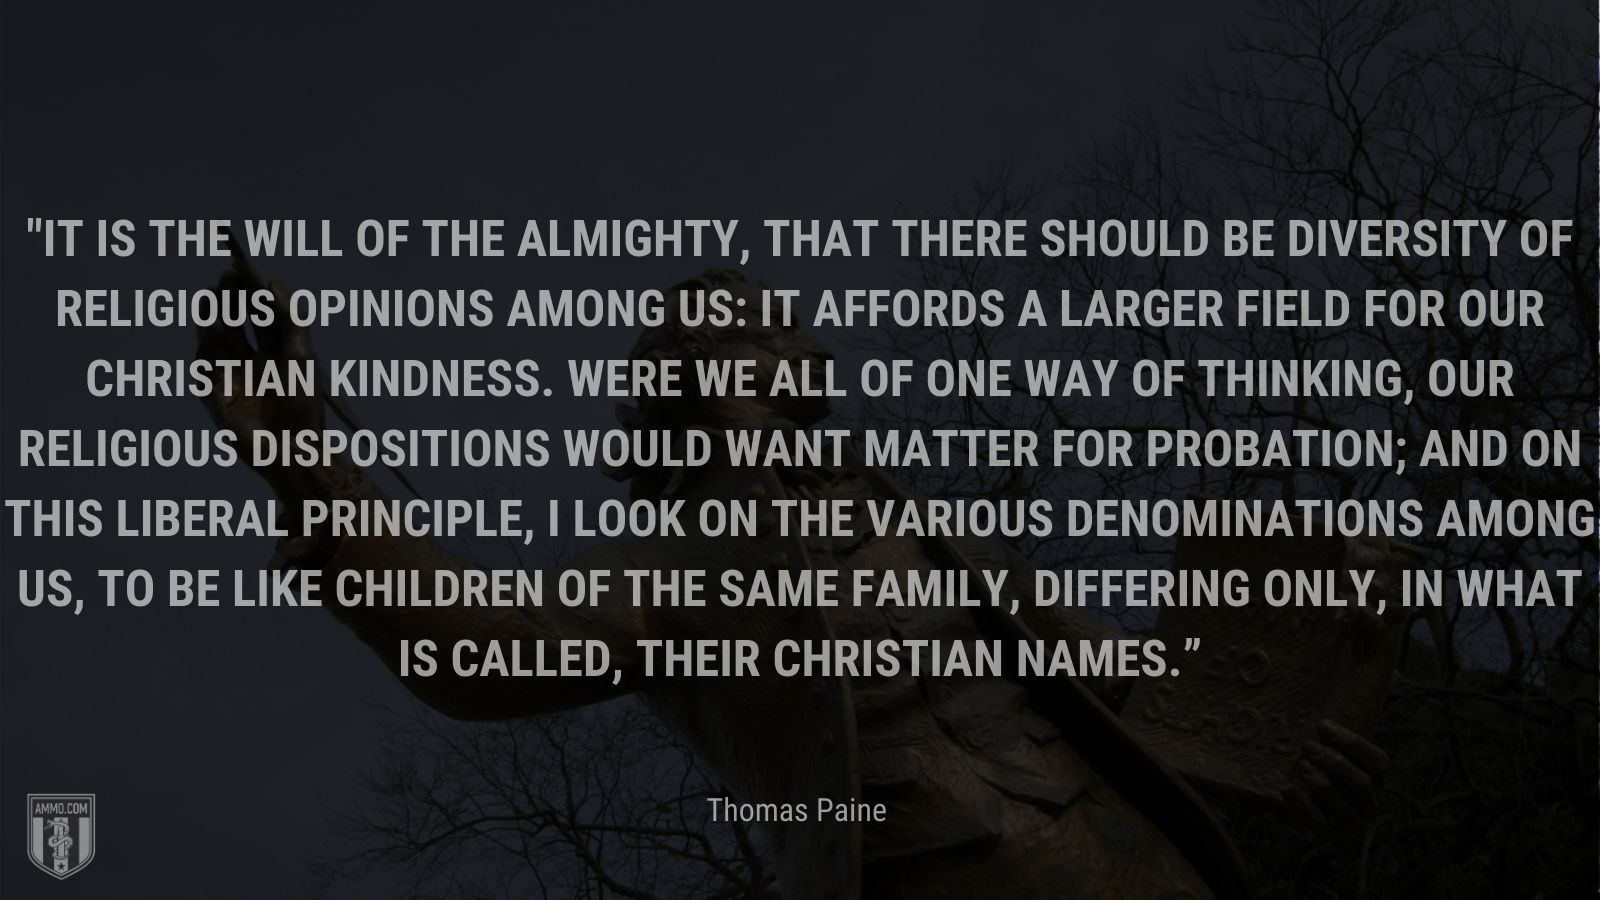 """""""It is the will of the Almighty, that there should be diversity of religious opinions among us: It affords a larger field for our Christian kindness. Were we all of one way of thinking, our religious dispositions would want matter for probation; and on this liberal principle, I look on the various denominations among us, to be like children of the same family, differing only, in what is called, their Christian names."""" - Thomas Paine"""